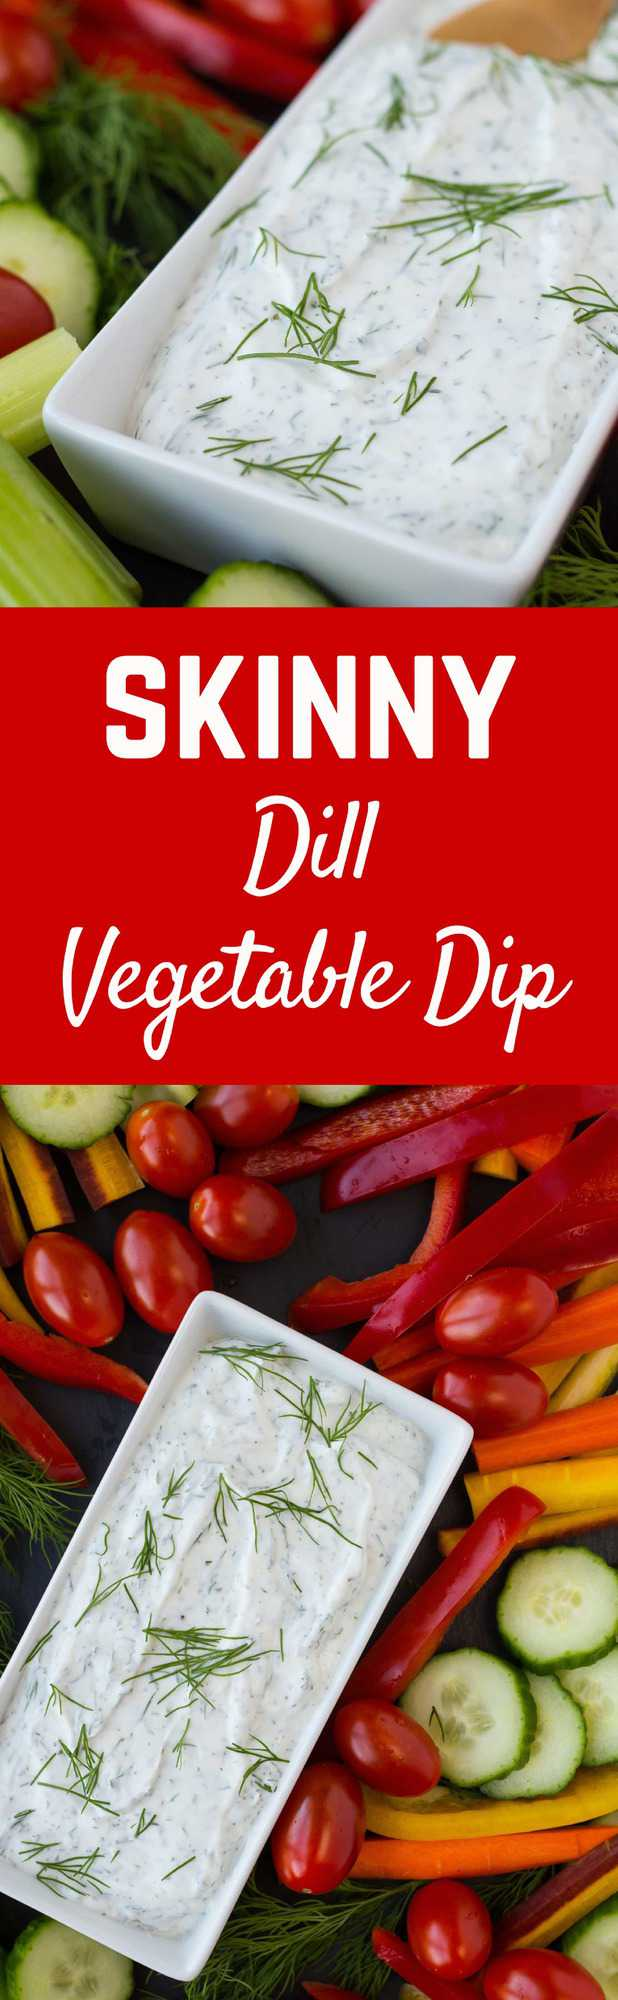 This skinny dill vegetable dip is a staple in our fridge -- we're hardly ever without it! You won't want to stop snacking on vegetables when you're dipping them in this healthy and low-cal dip.